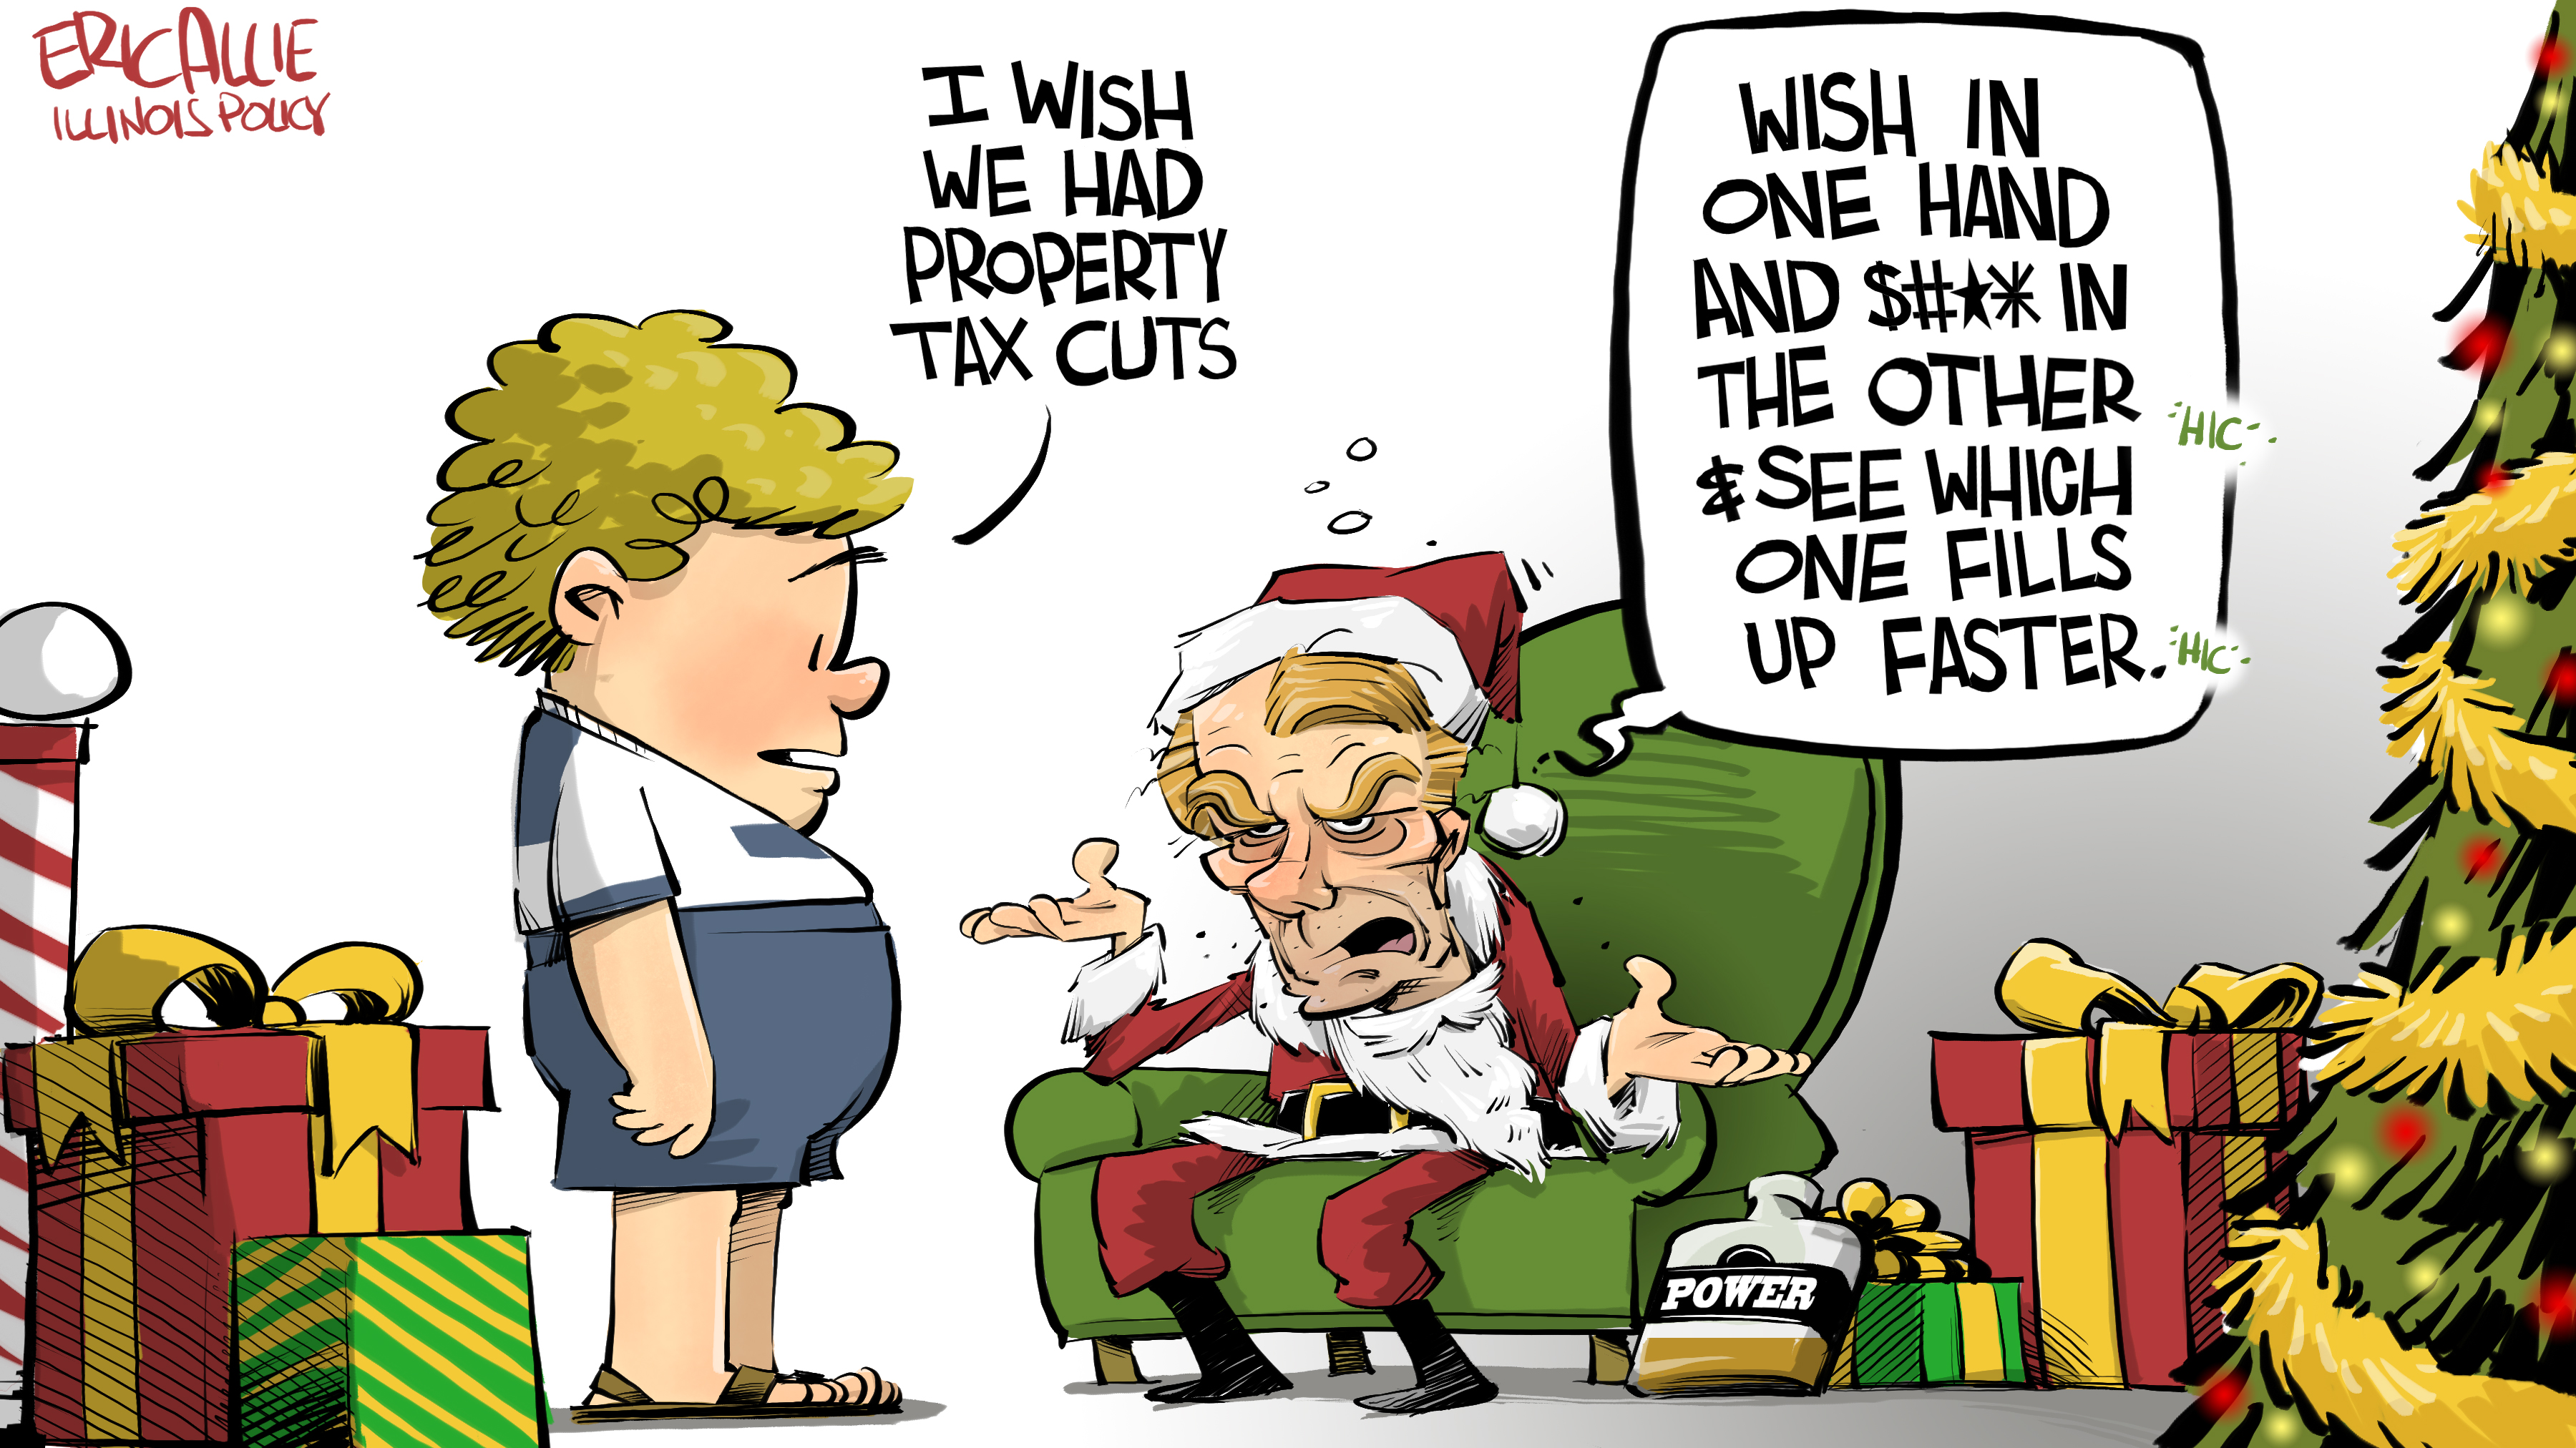 Illinois' bad Santa